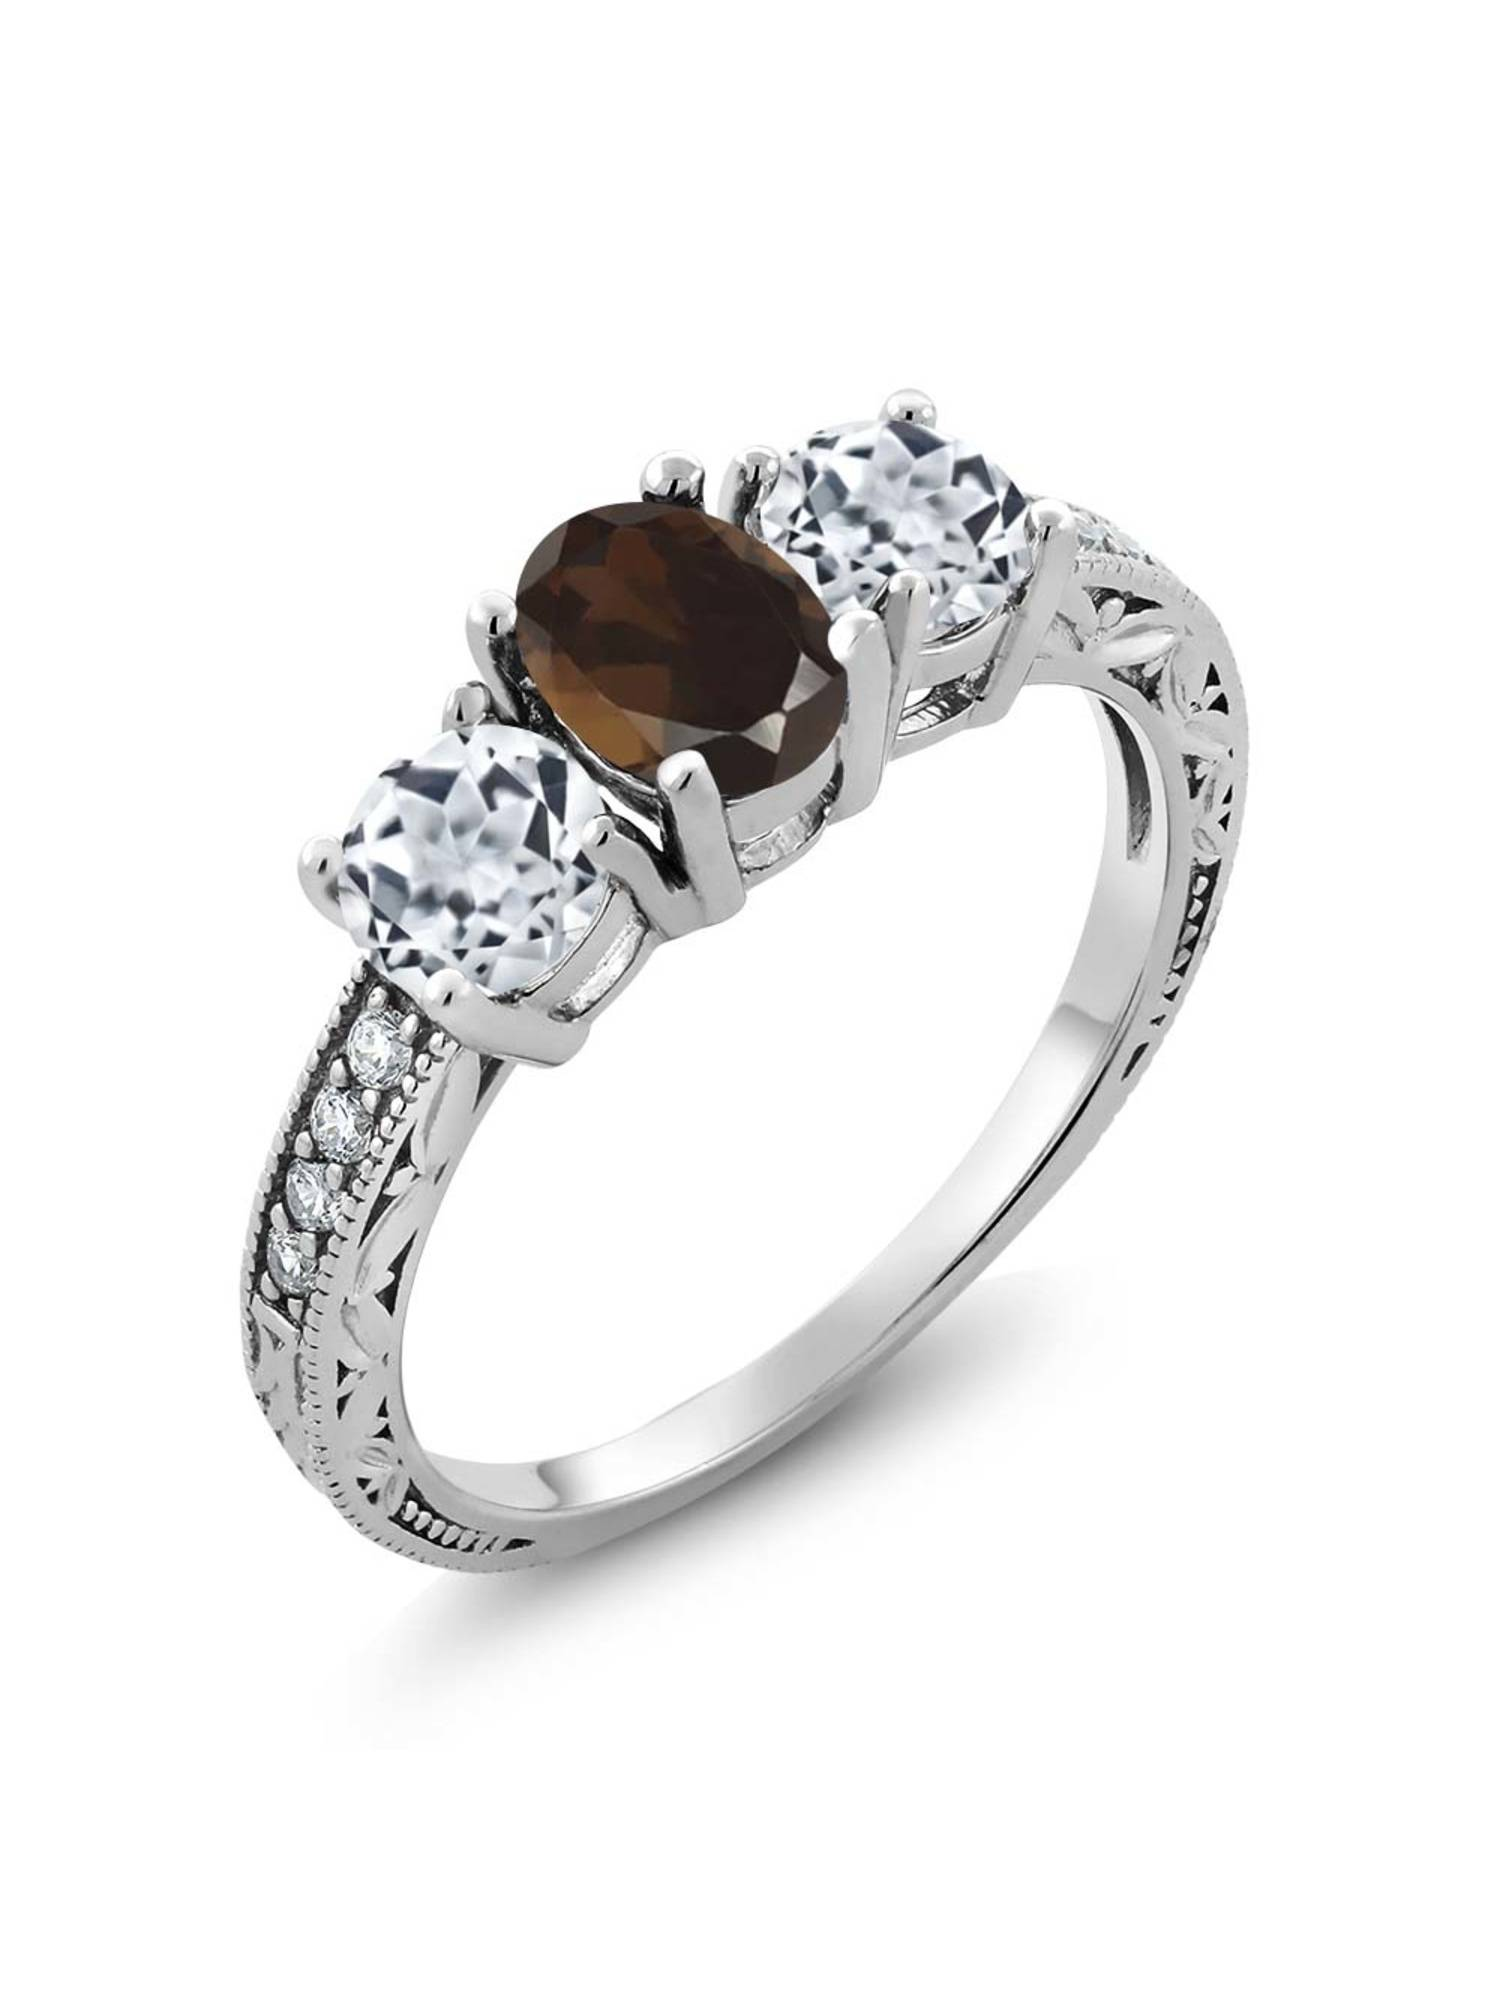 Gem Stone King 1.87 Ct Oval Brown Smoky Quartz White Topaz 925 Sterling Silver Ring